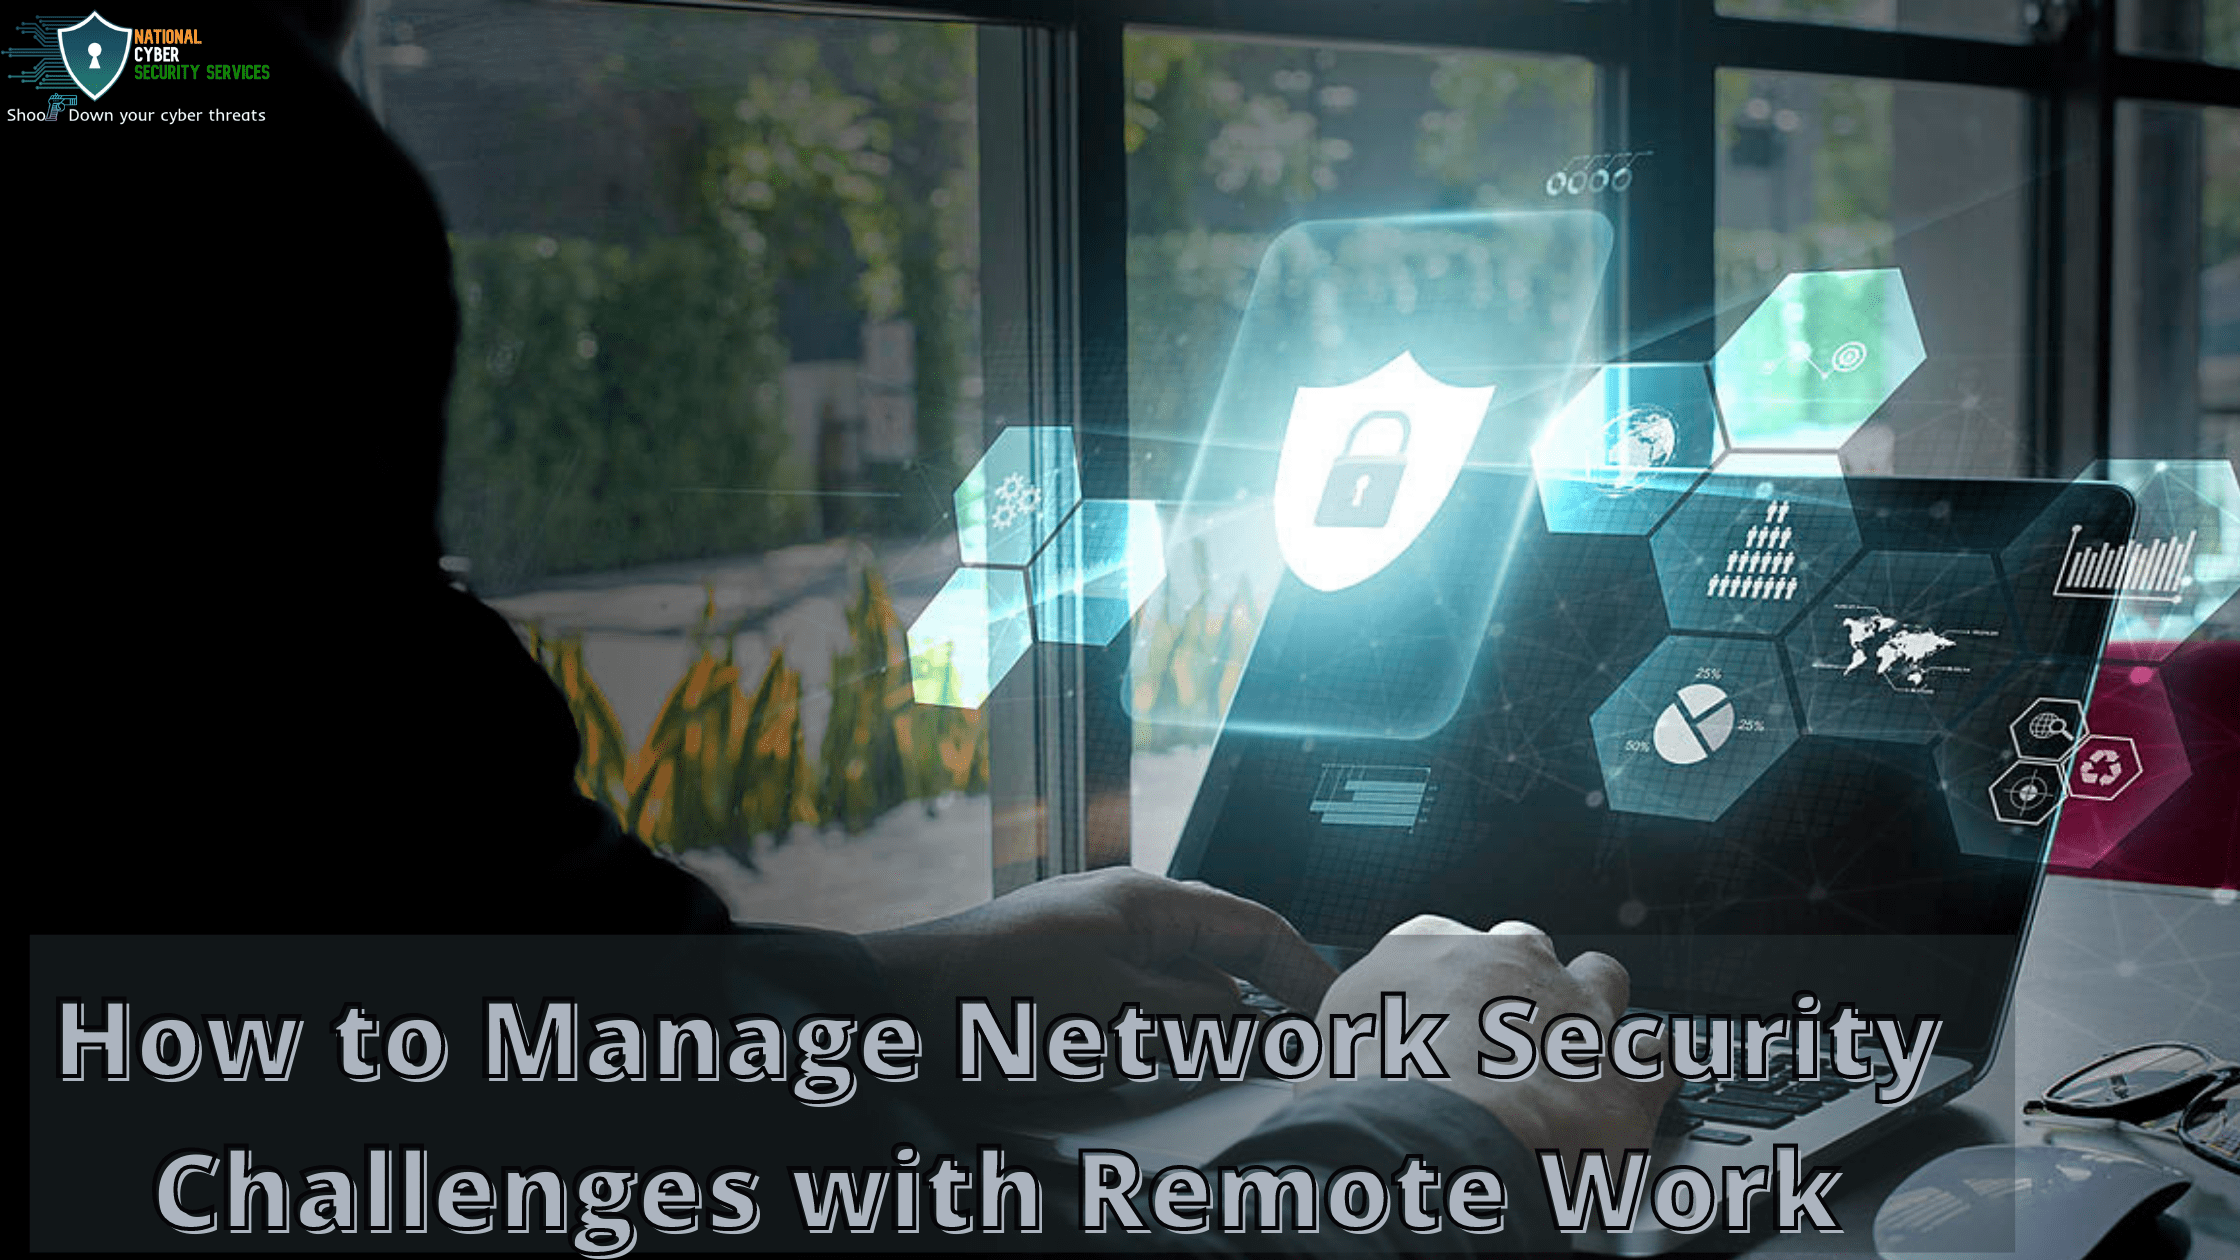 Network Security Challenges in Remote Work